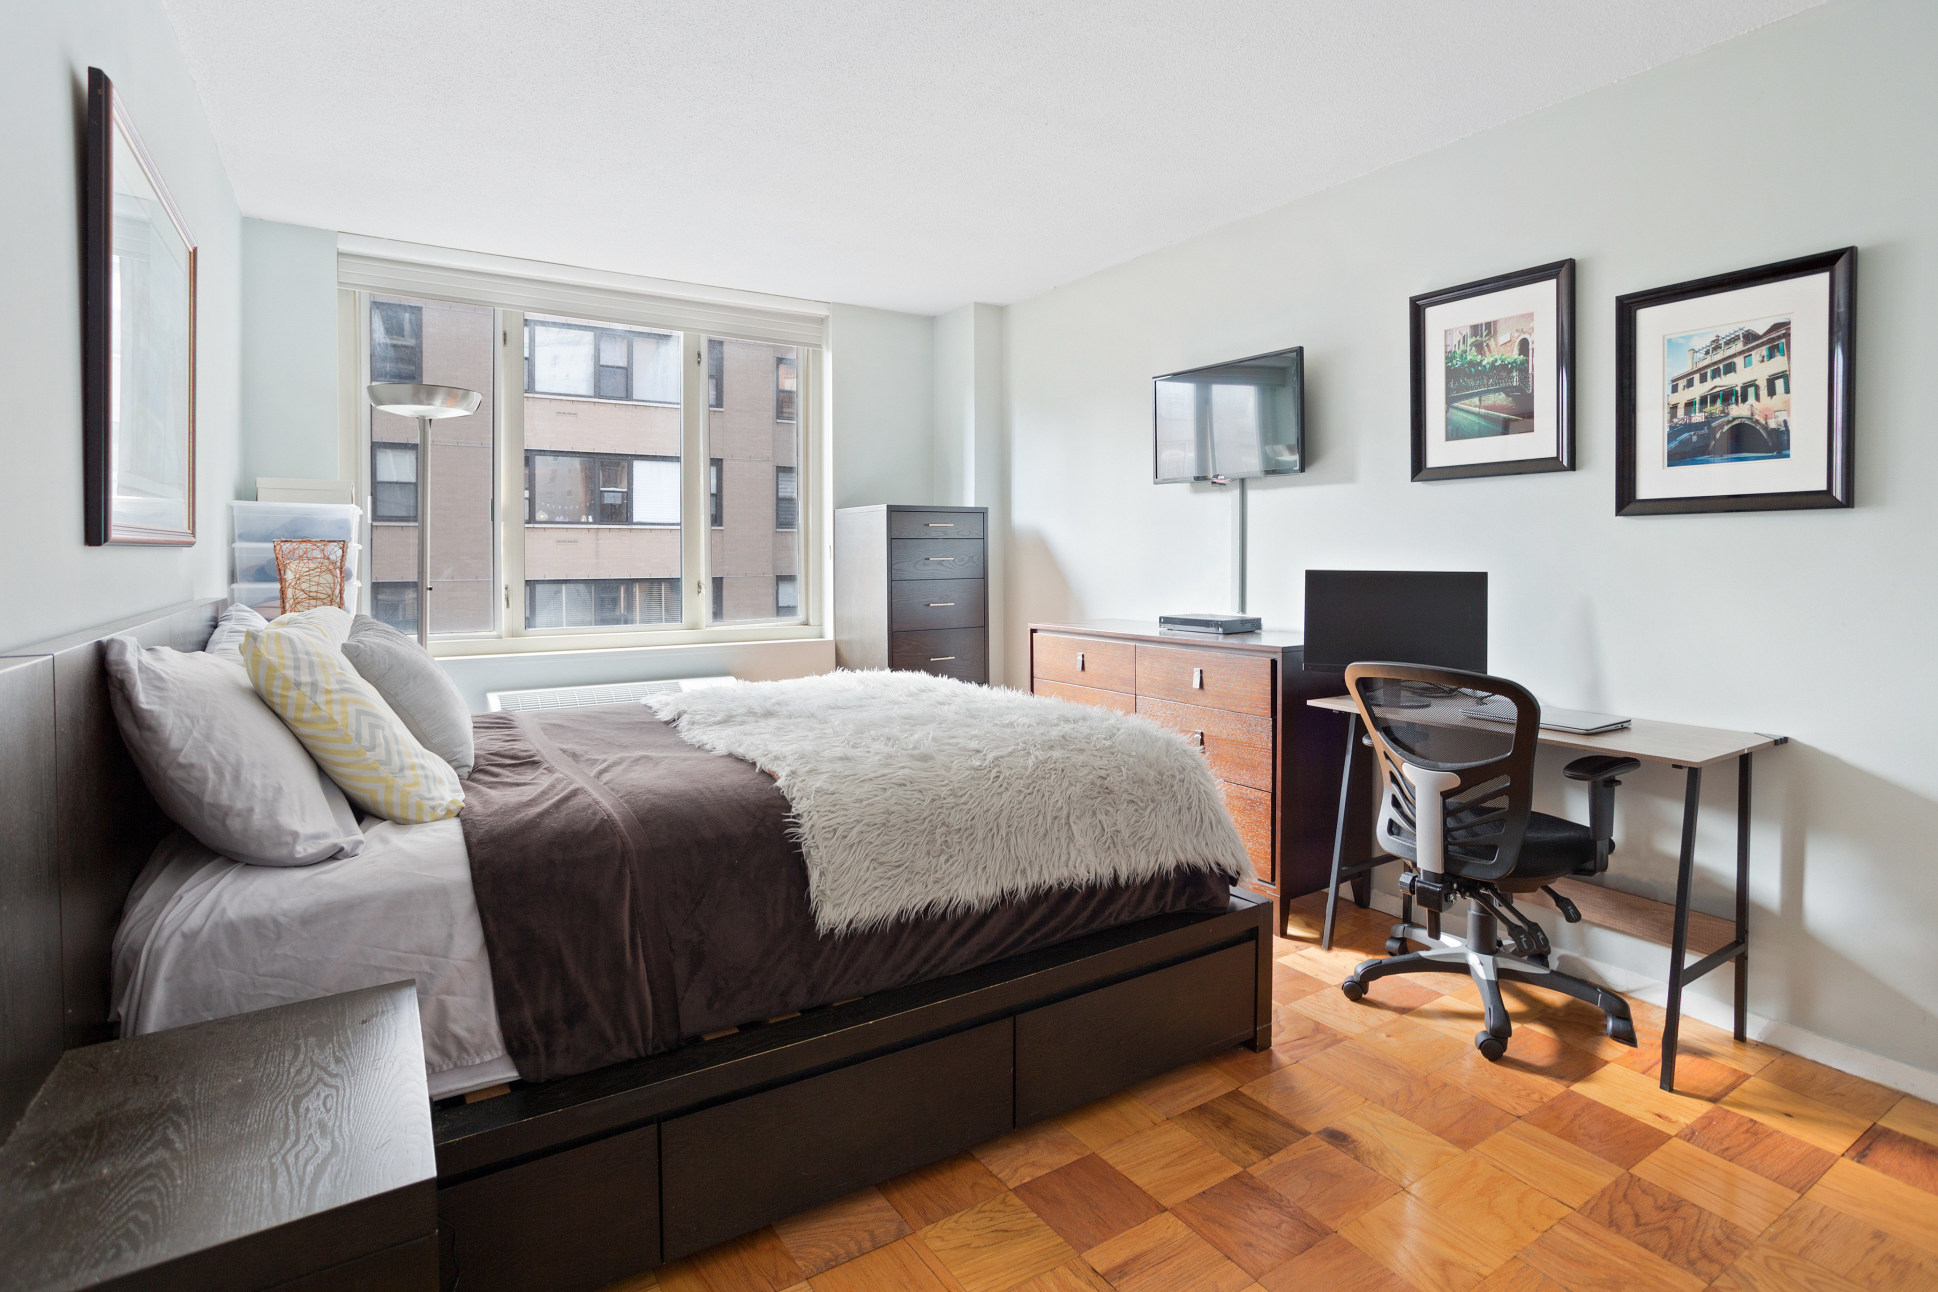 Apartment for sale at 130 West 67th Street, Apt 8-J